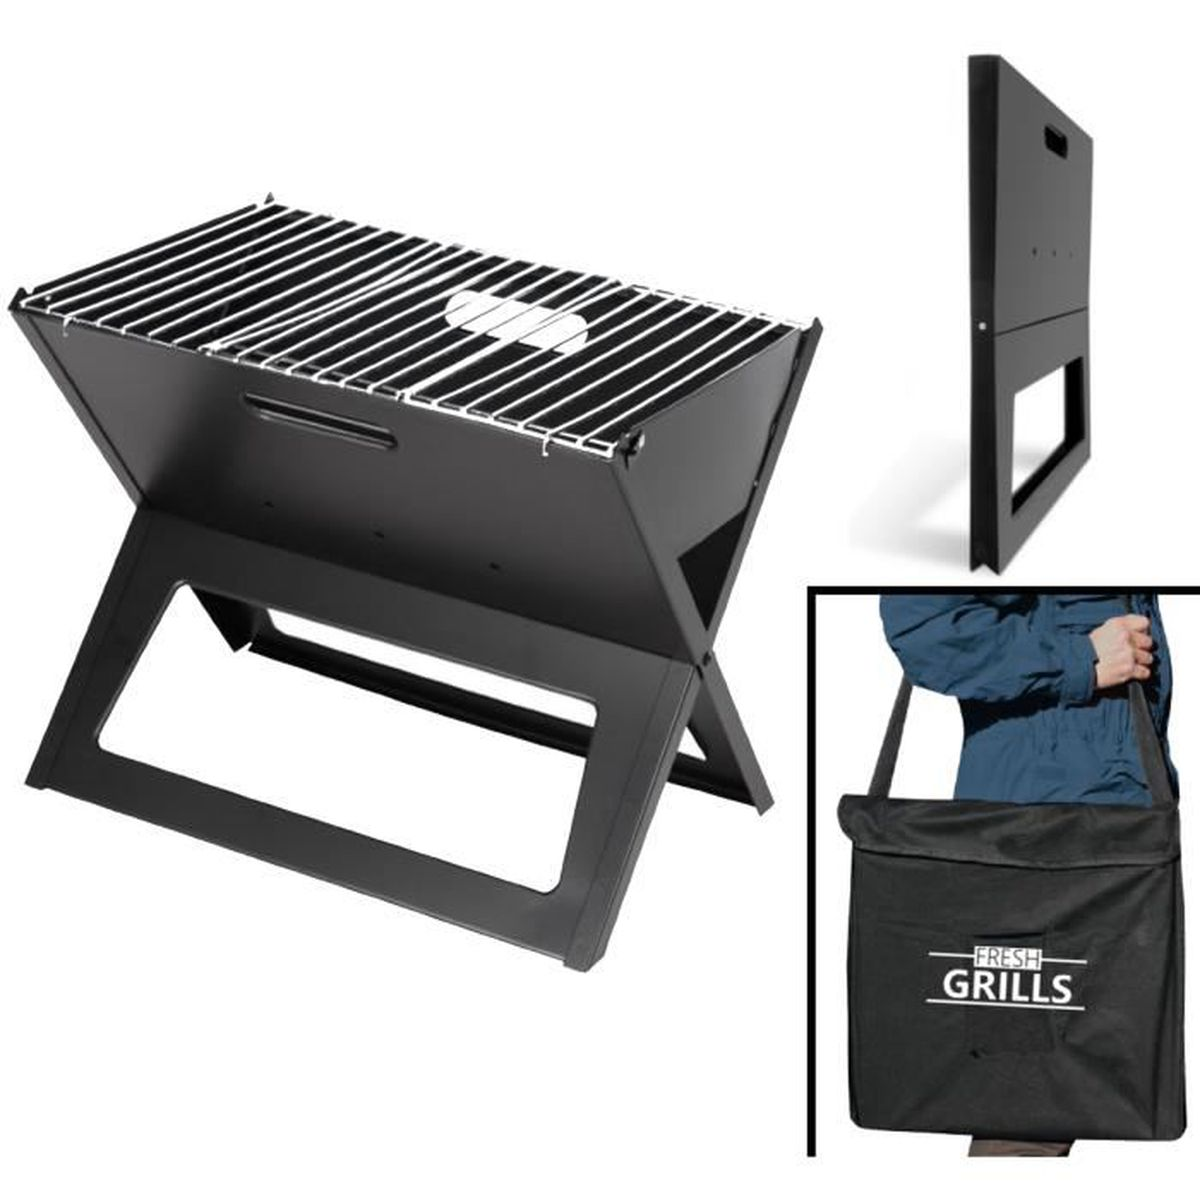 grille barbecue pliable achat vente grille barbecue. Black Bedroom Furniture Sets. Home Design Ideas